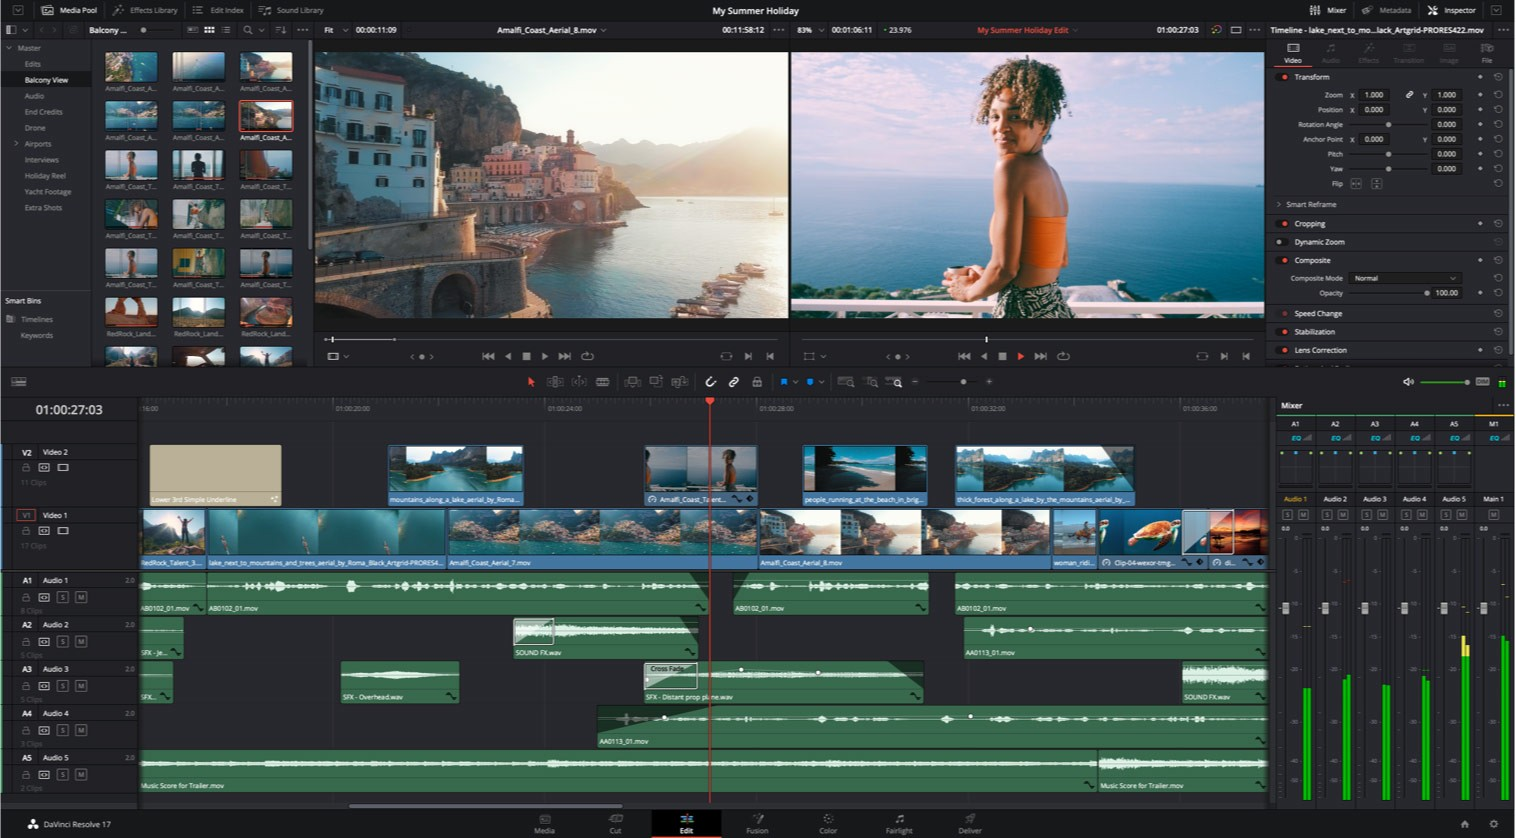 word image 3 - Blackmagic Design Announces DaVinci Resolve 17